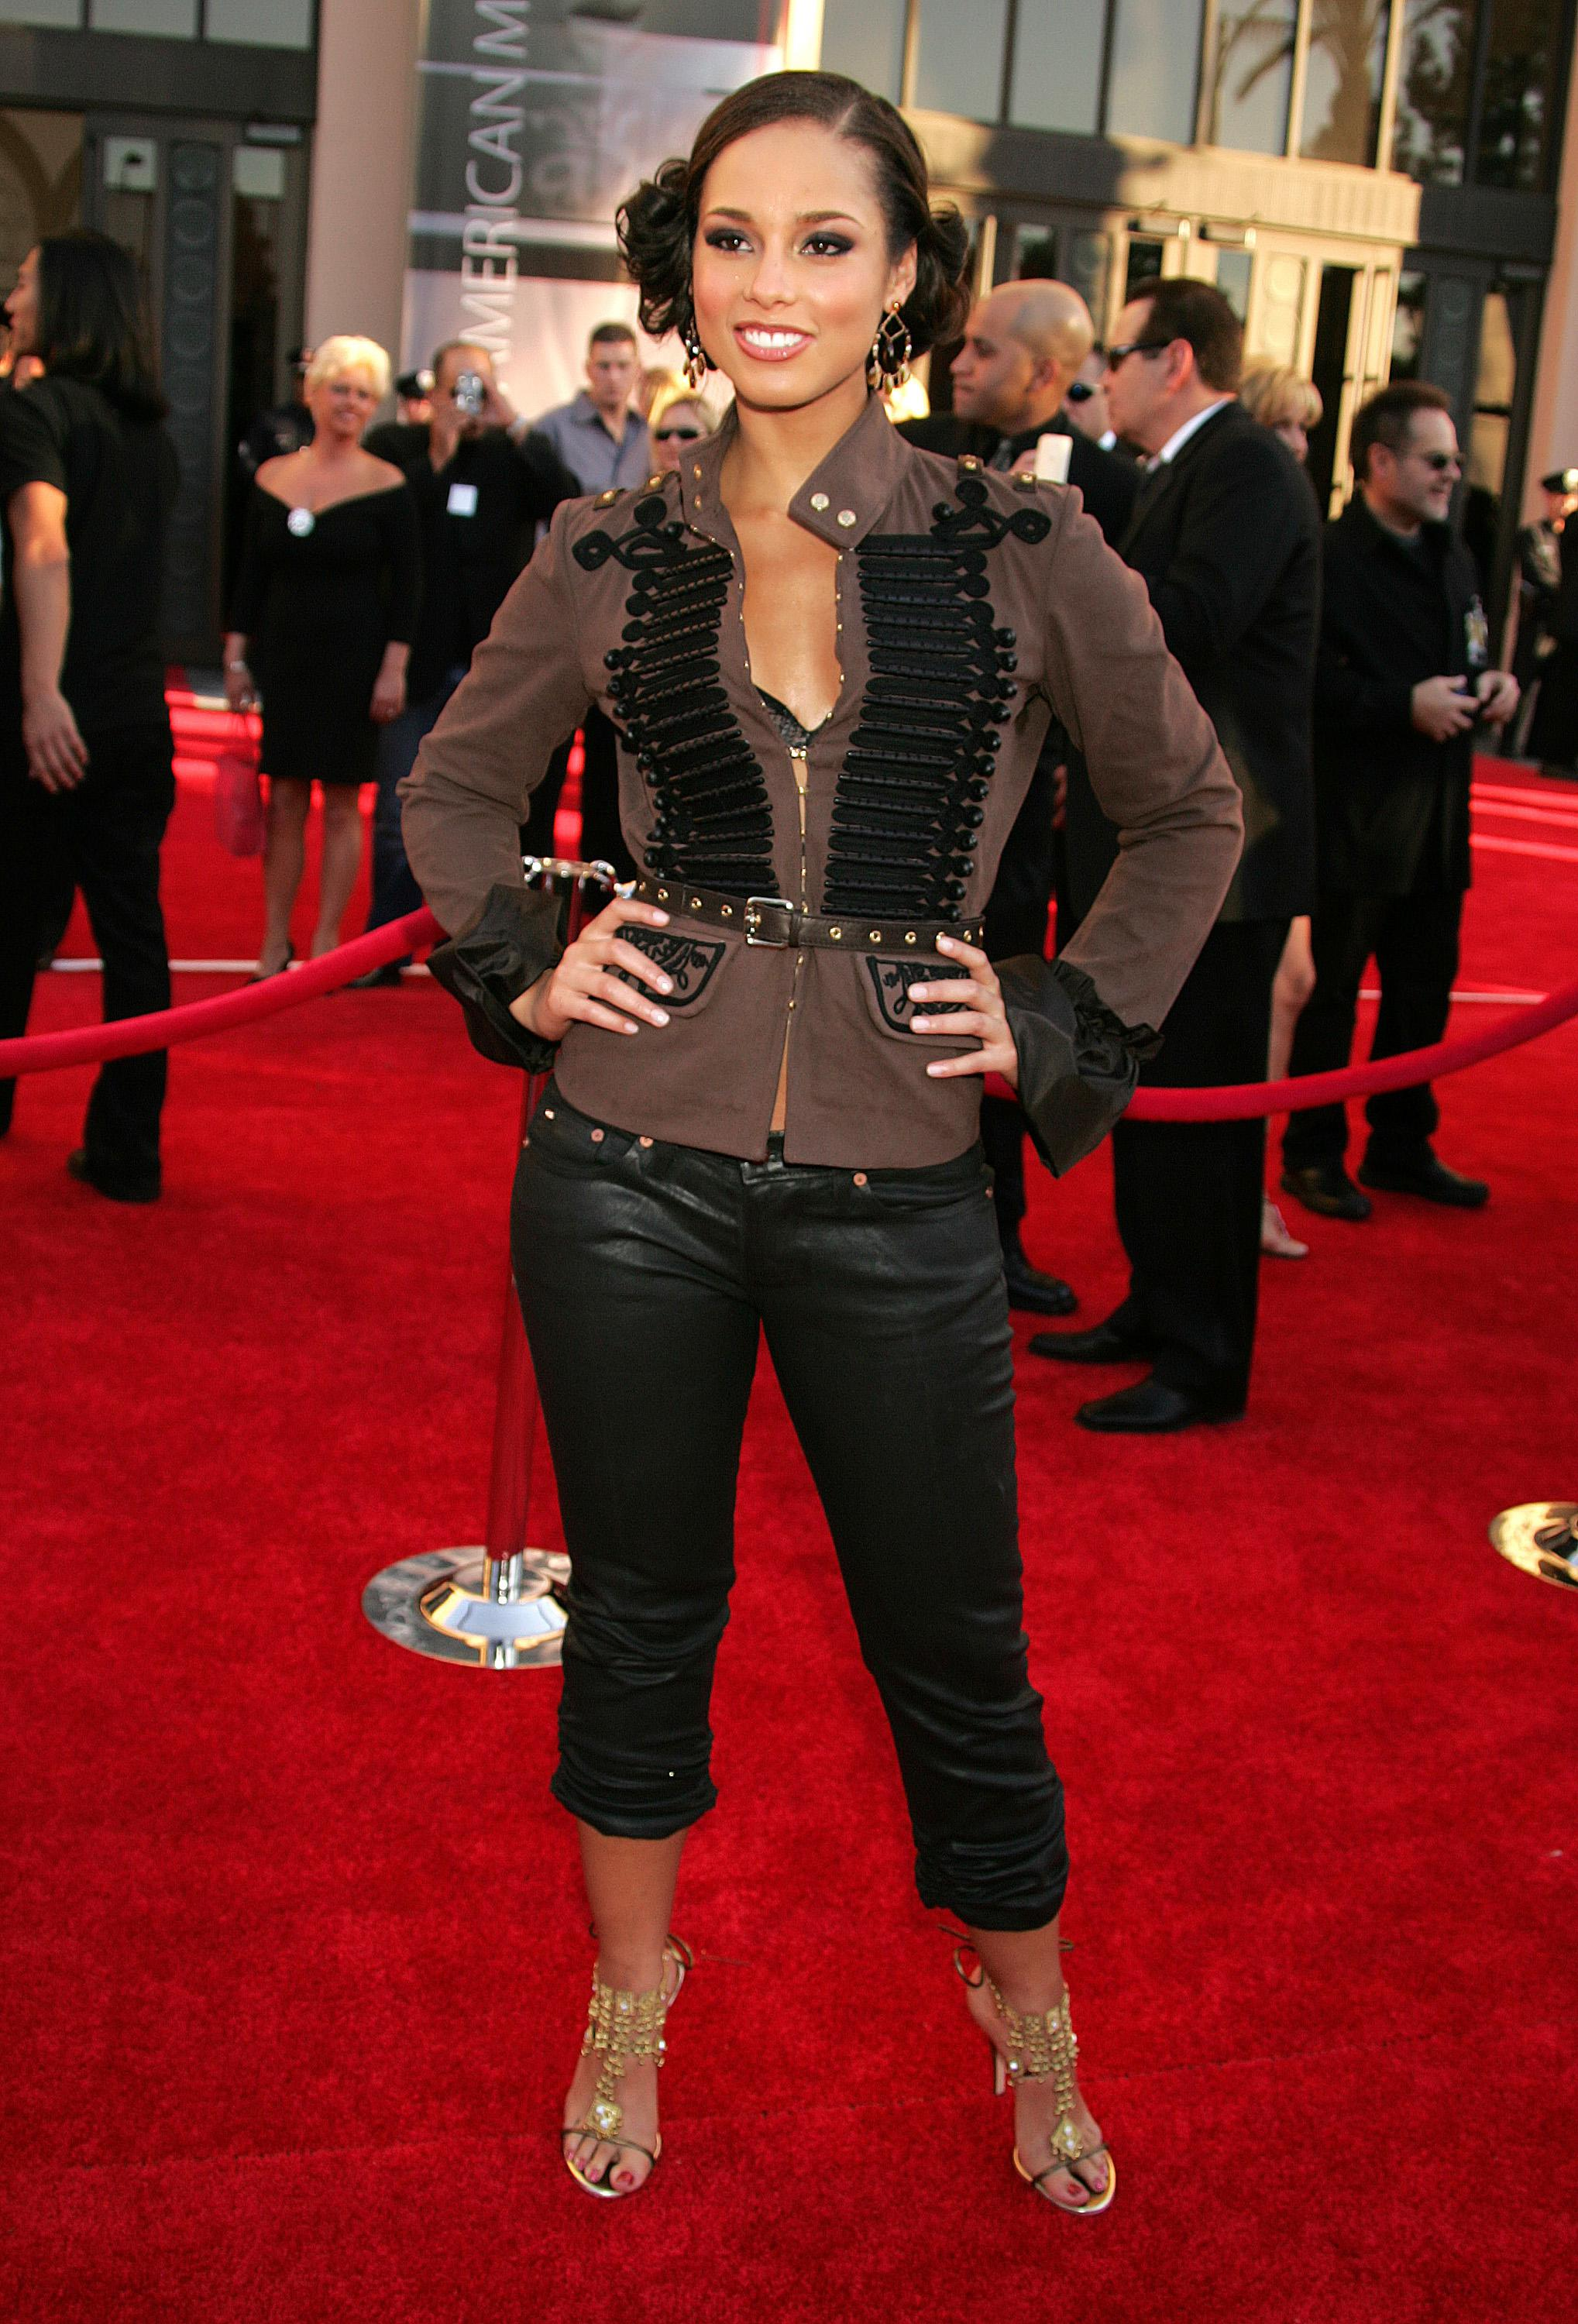 32nd Annual American Music Awards - Arrivals